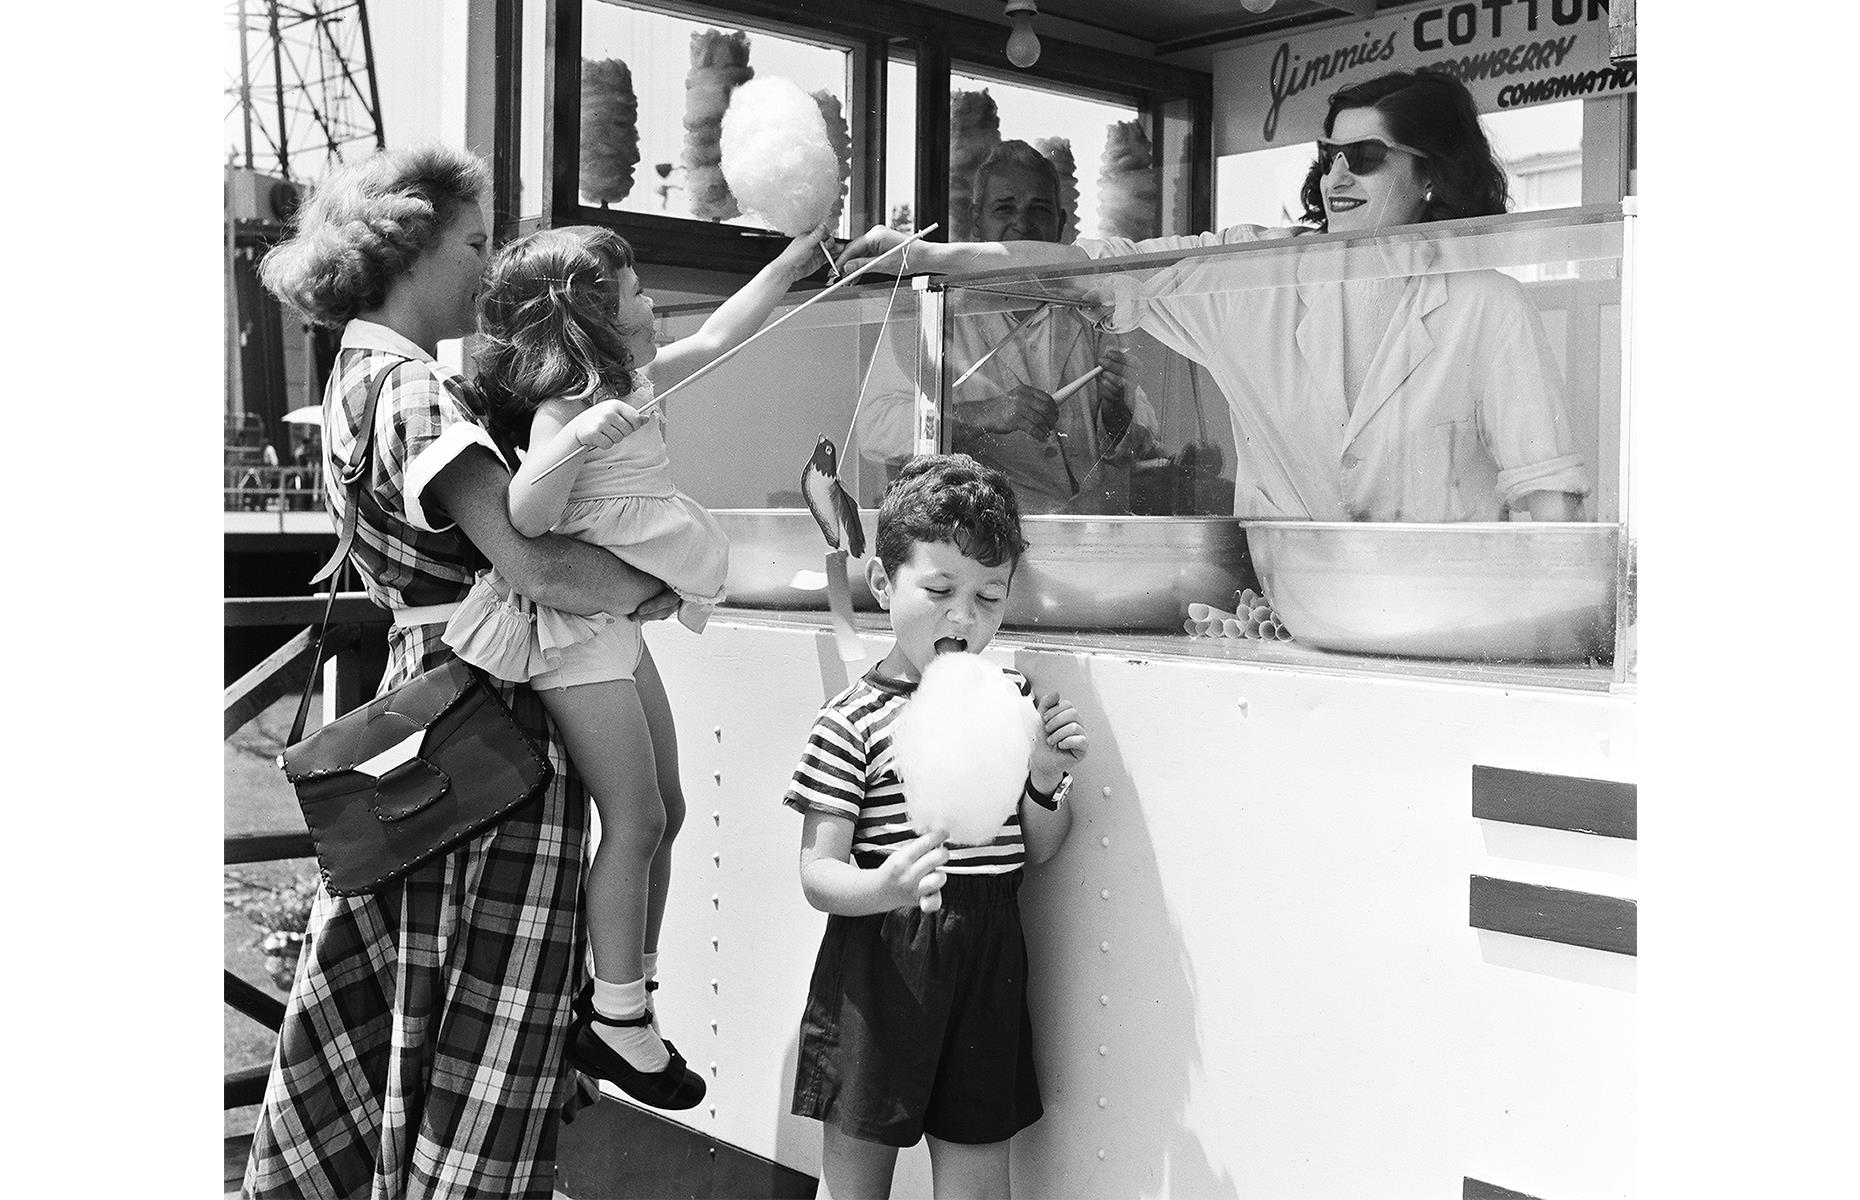 Slide 4 of 38: Farther up the coast, Coney Island – with its theme parks, sandy beach and family-friendly amusements – was another place that thrived towards the end of the decade. Cotton candy is the snack of choice here and, in this nostalgic shot, a child gladly takes a sweet candy cloud from a smiling vendor.